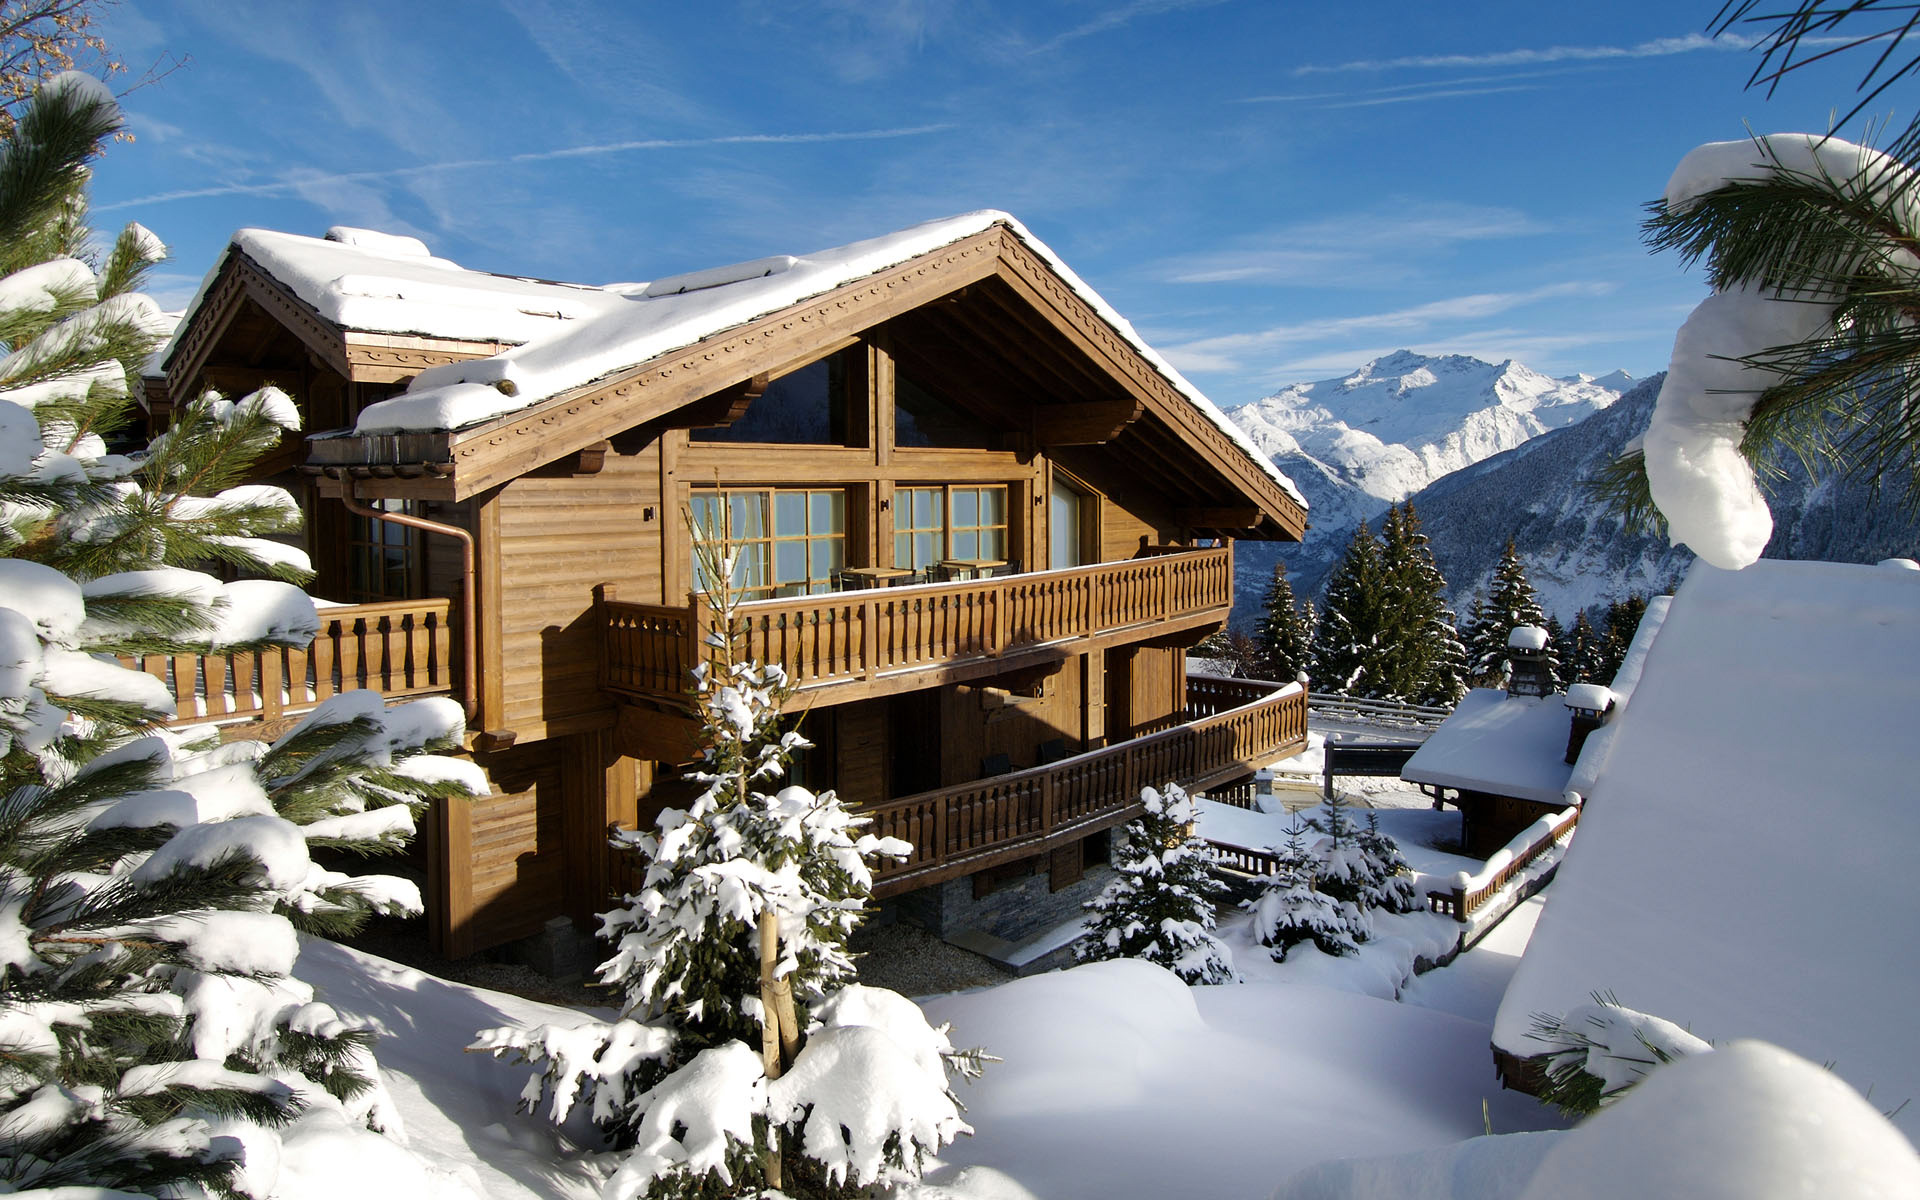 Chalet Le Blanchot, Courchevel 1850, Alps, France